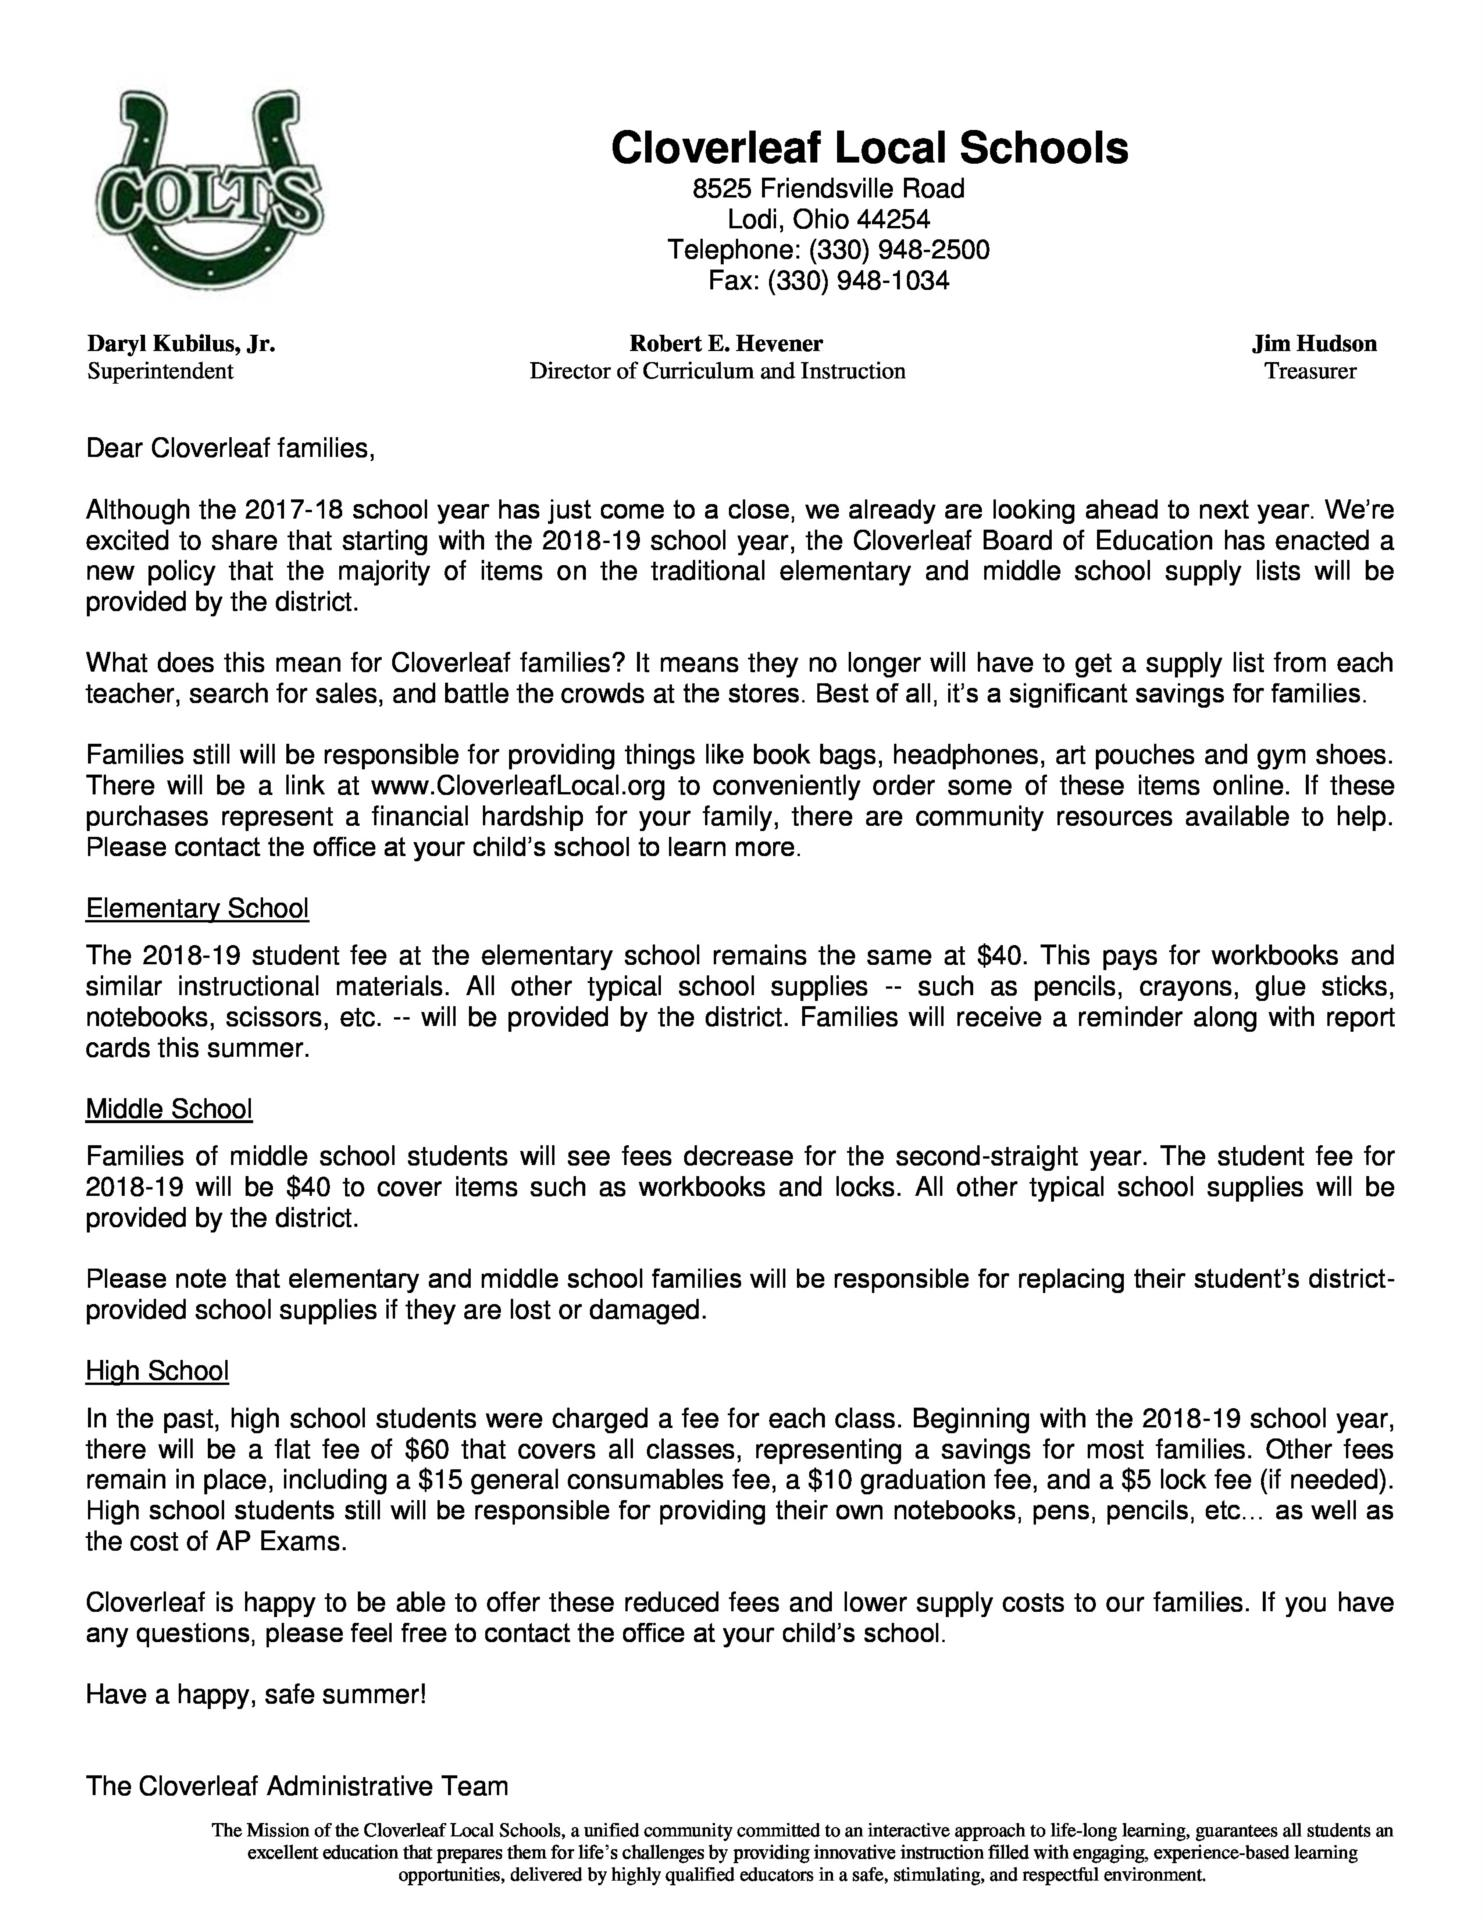 District Supply Letter June 2018